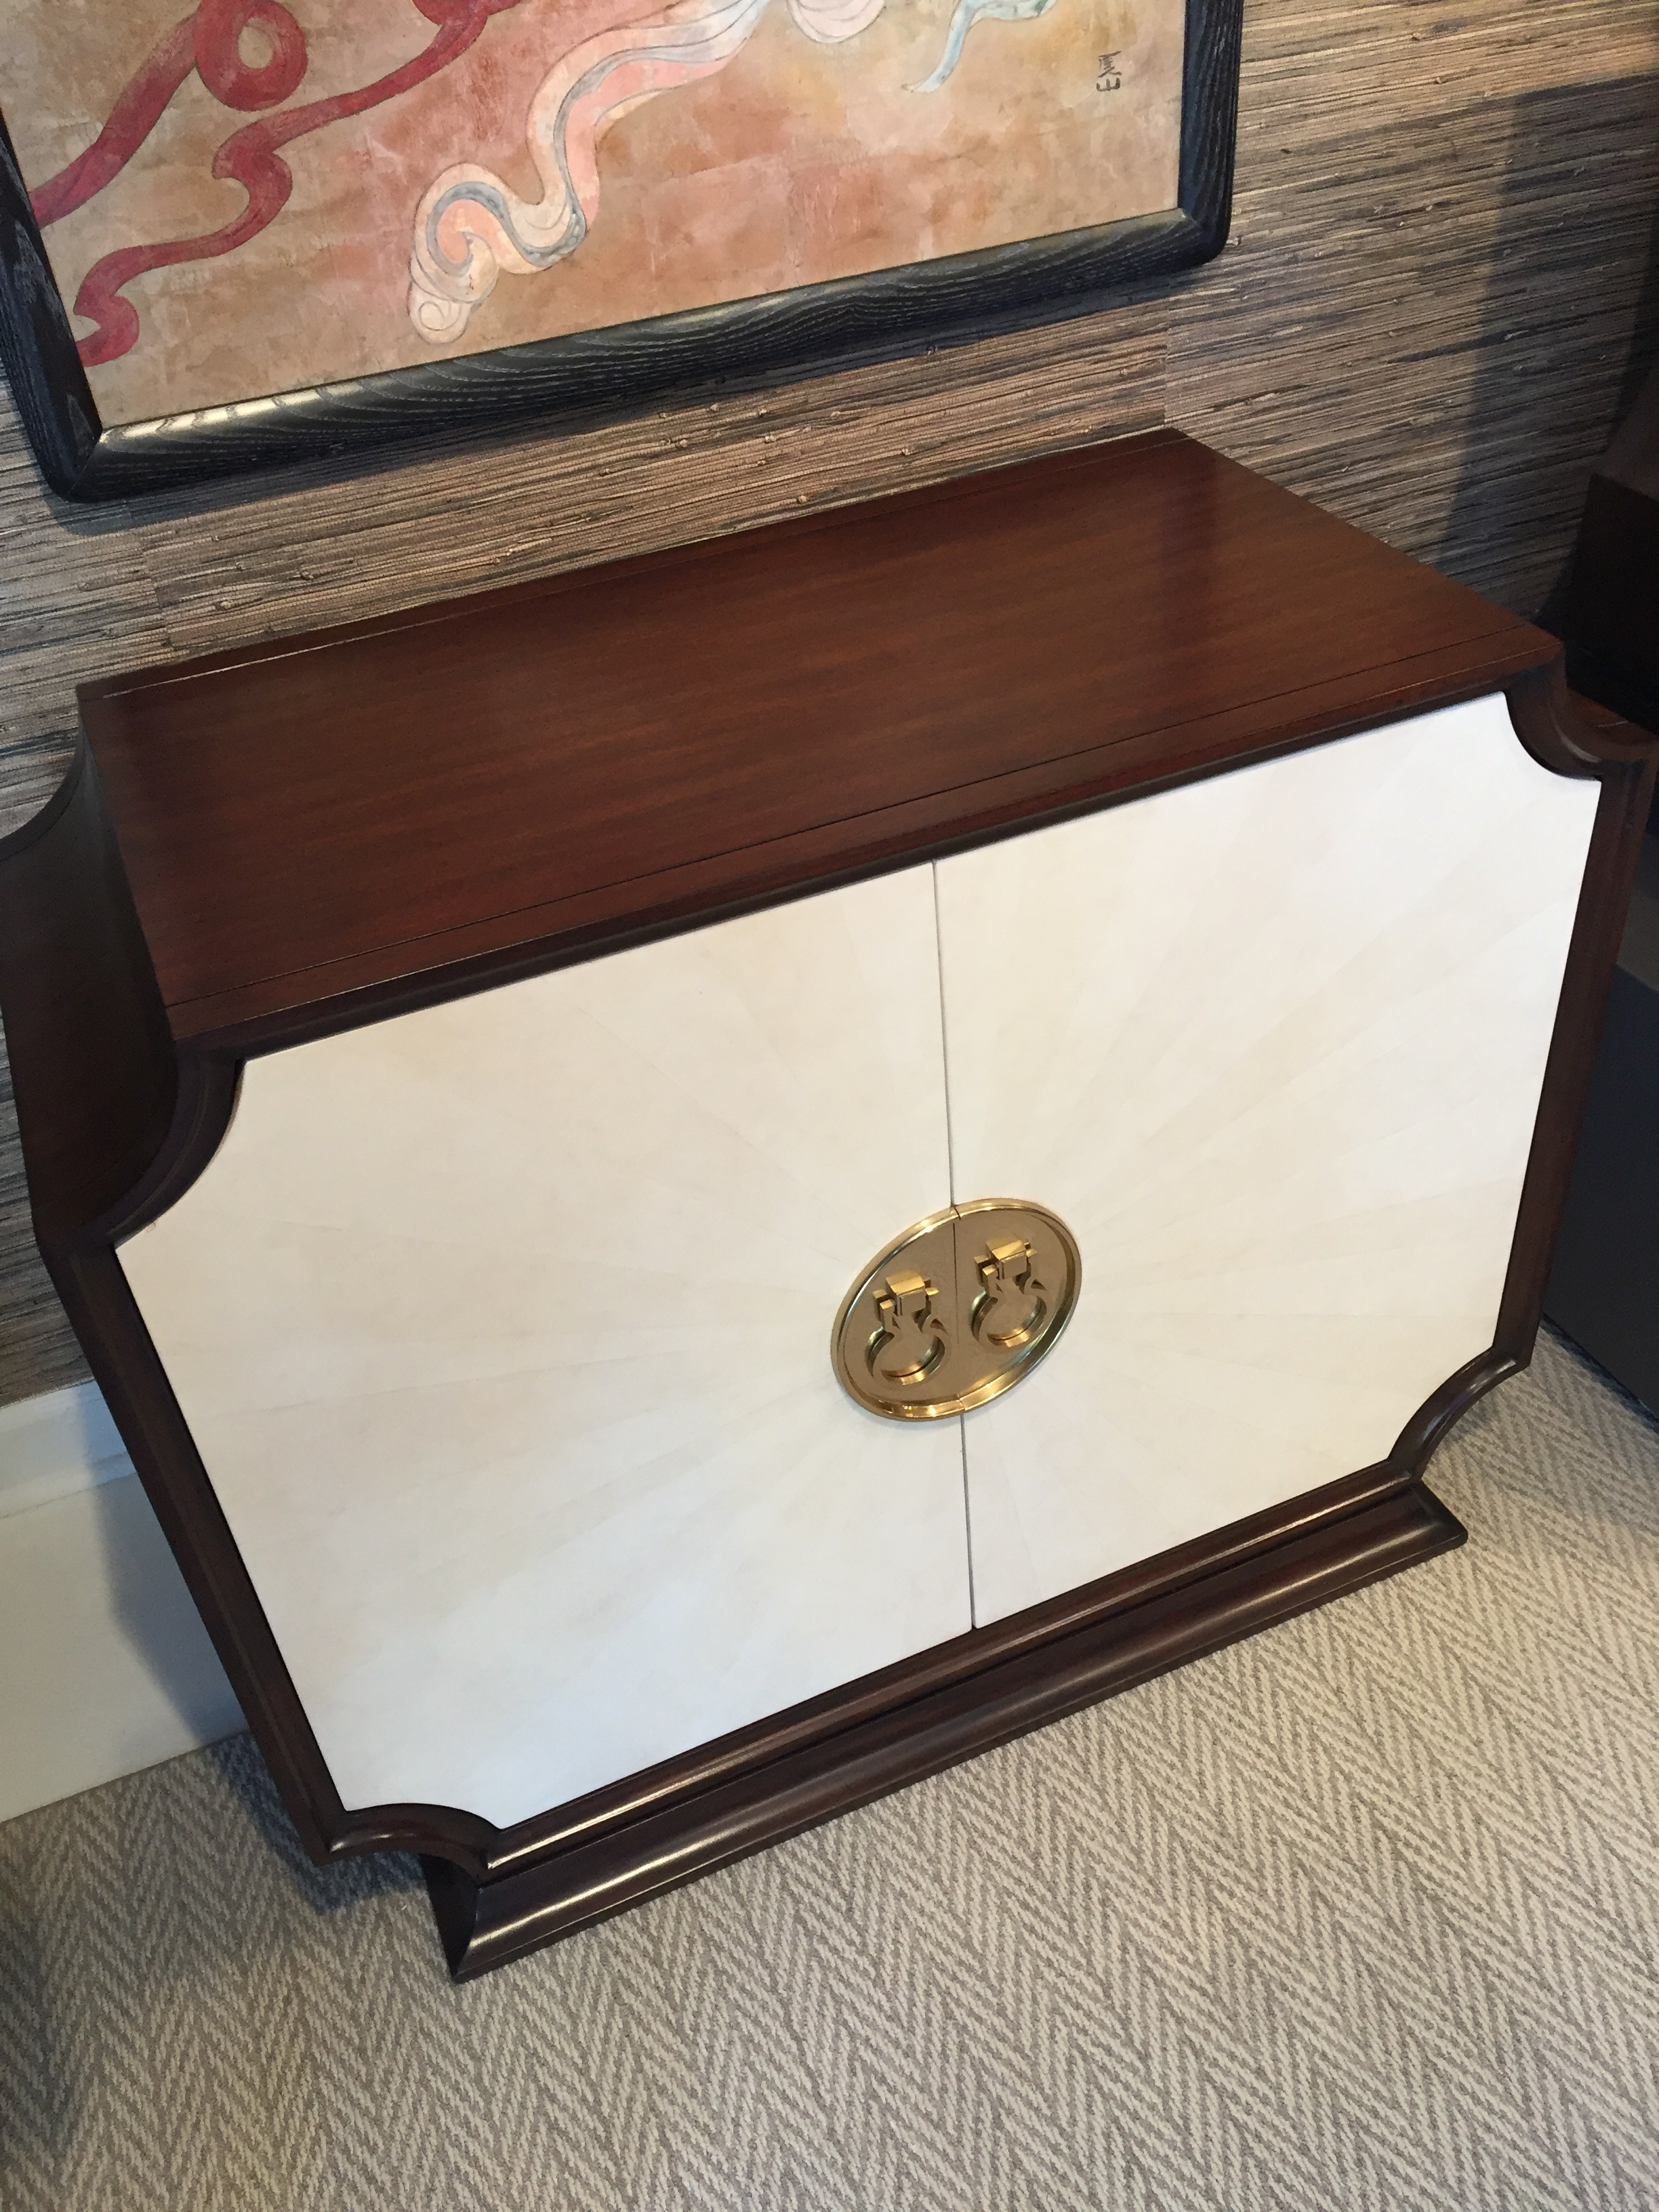 Radial white front on this cabinet by  Ambella Home . Love the shape and details on this piece. It will make an amazing bar cabinet!